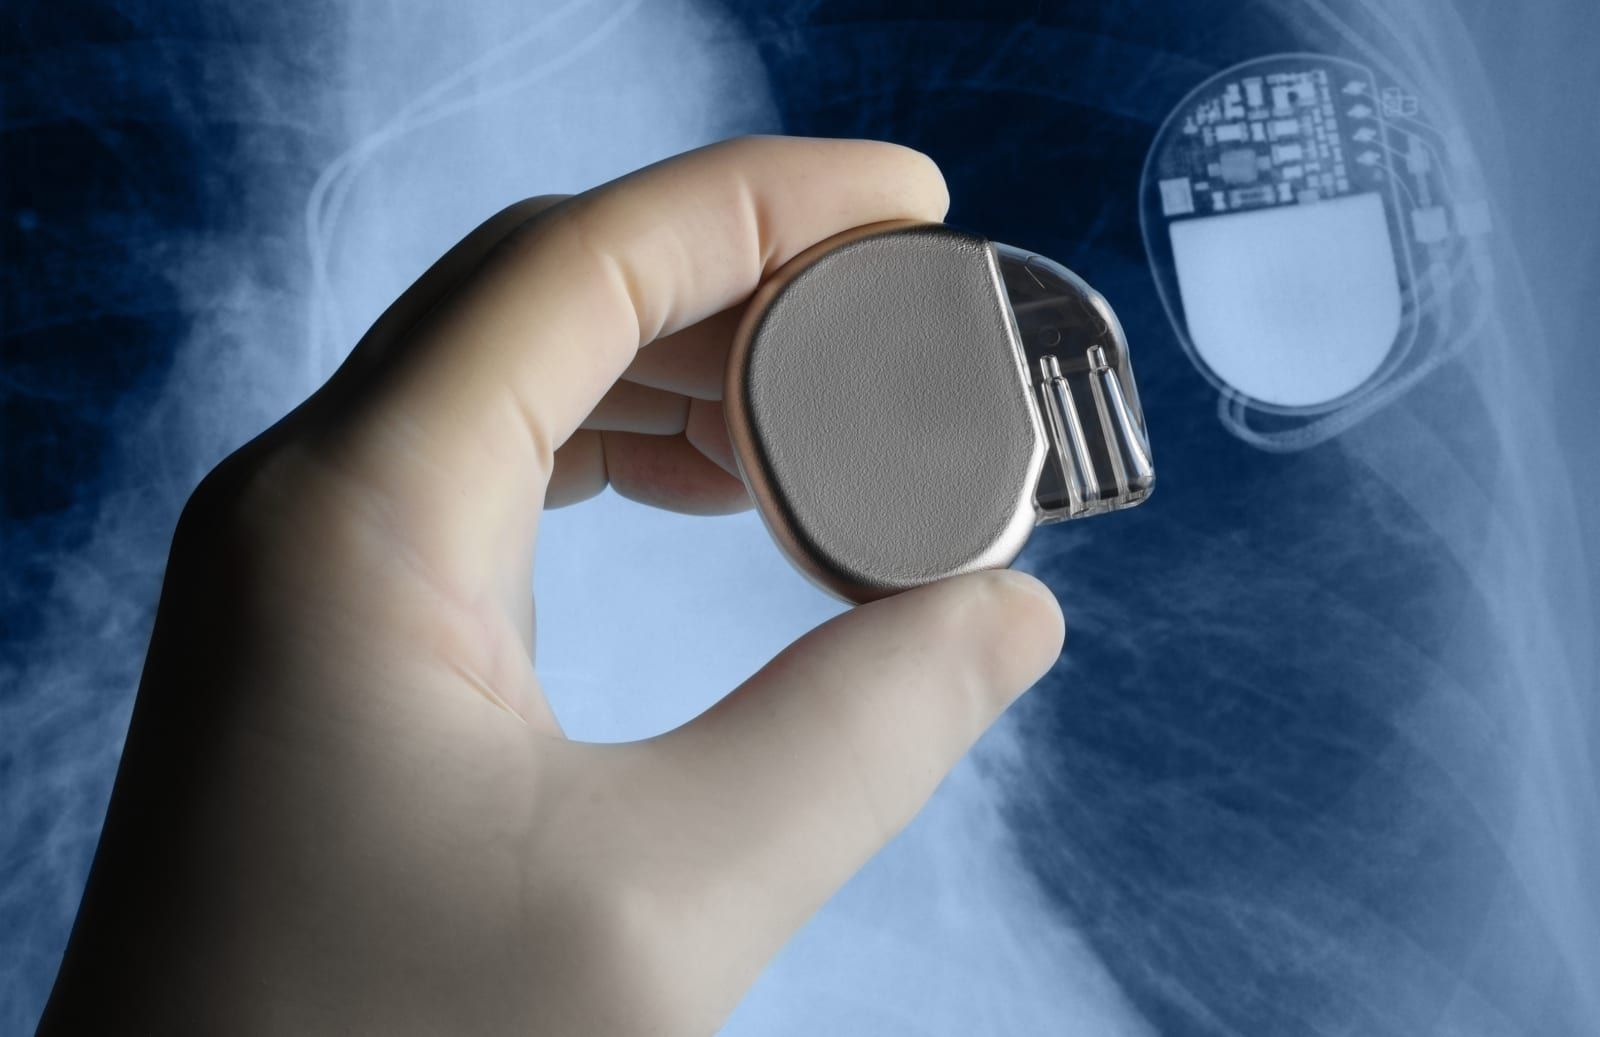 FDA issues final guidance on medical devices' cybersecurity